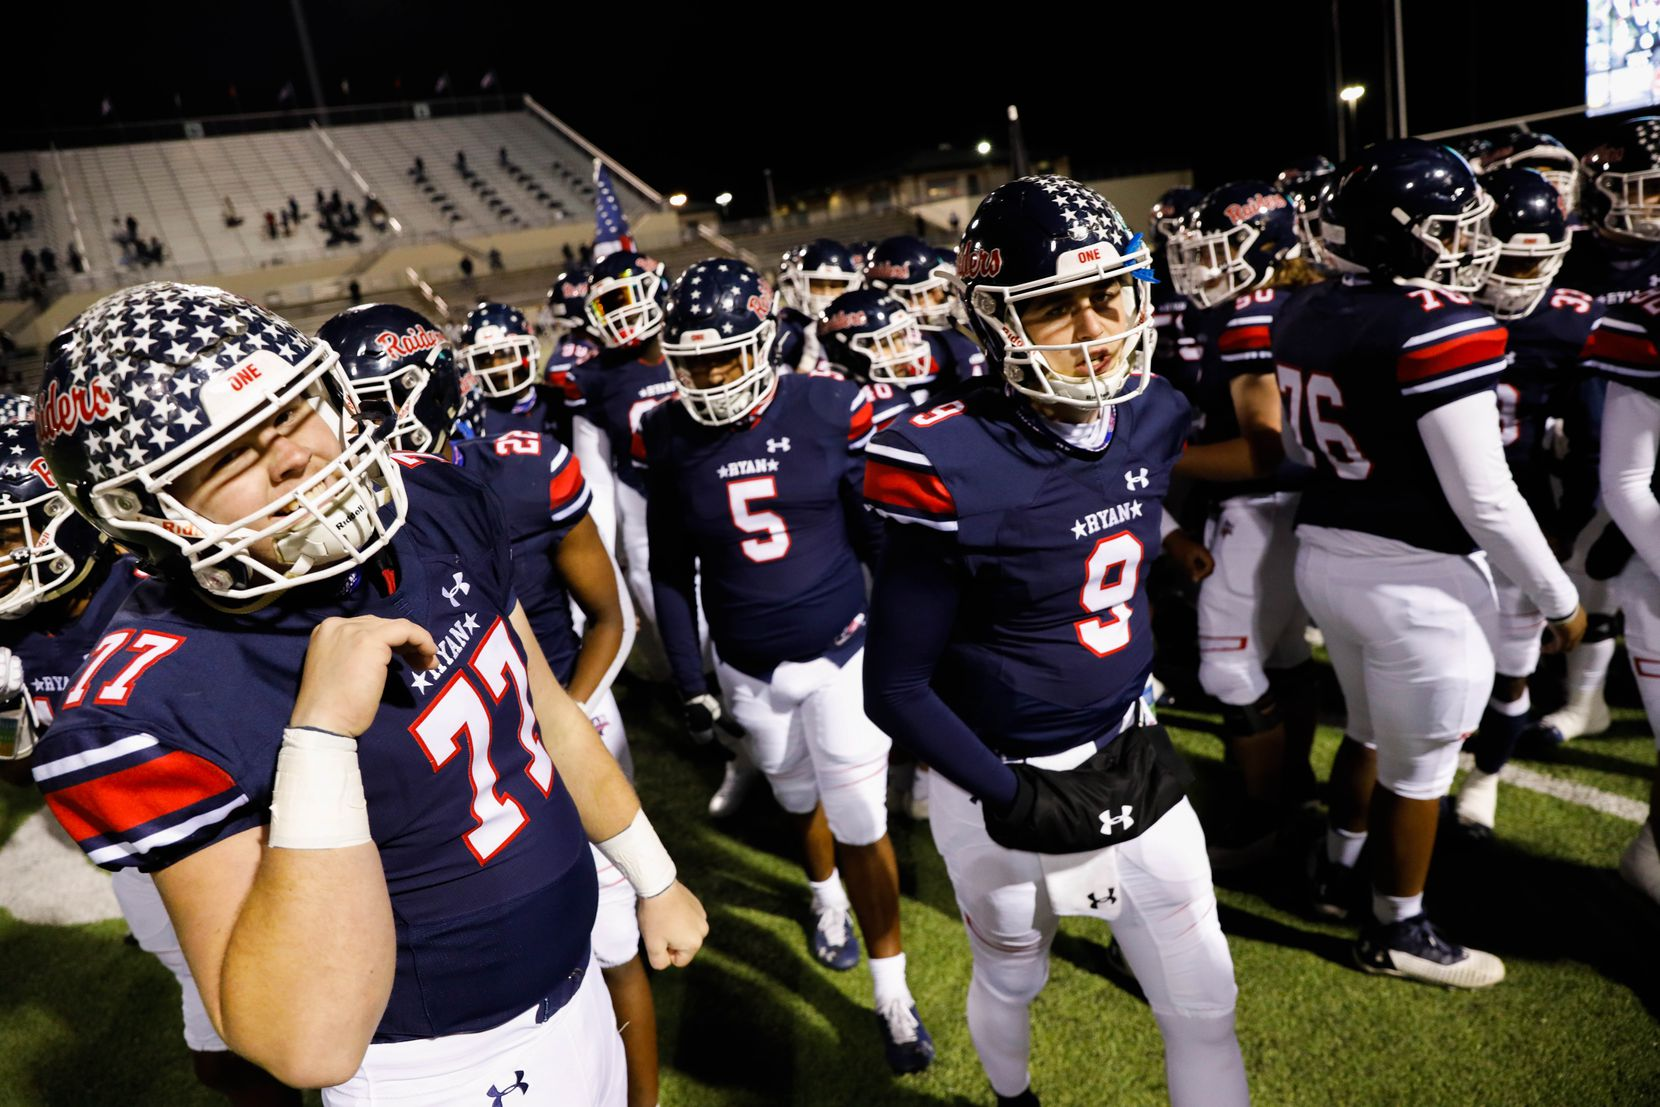 Denton Ryan's players walk to the sidelines before the start of a football game against Frisco Lone Star at the C.H. Collins Complex in Denton on Thursday, Dec. 4, 2020. The game is tied at halftime, 14-14. (Juan Figueroa/ The Dallas Morning News)